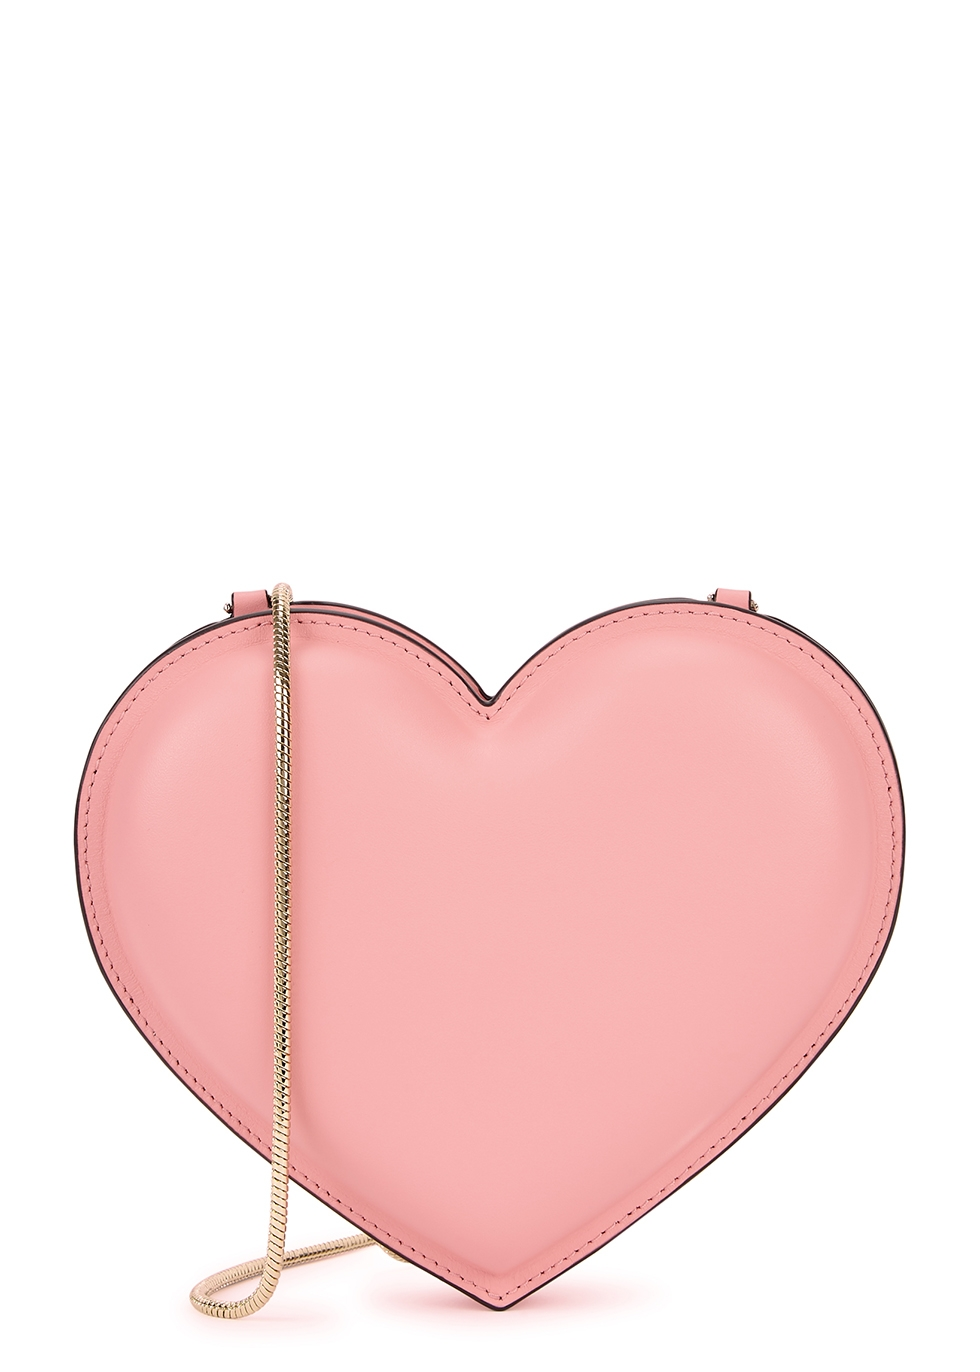 Rococo pink heart leather cross-body bag